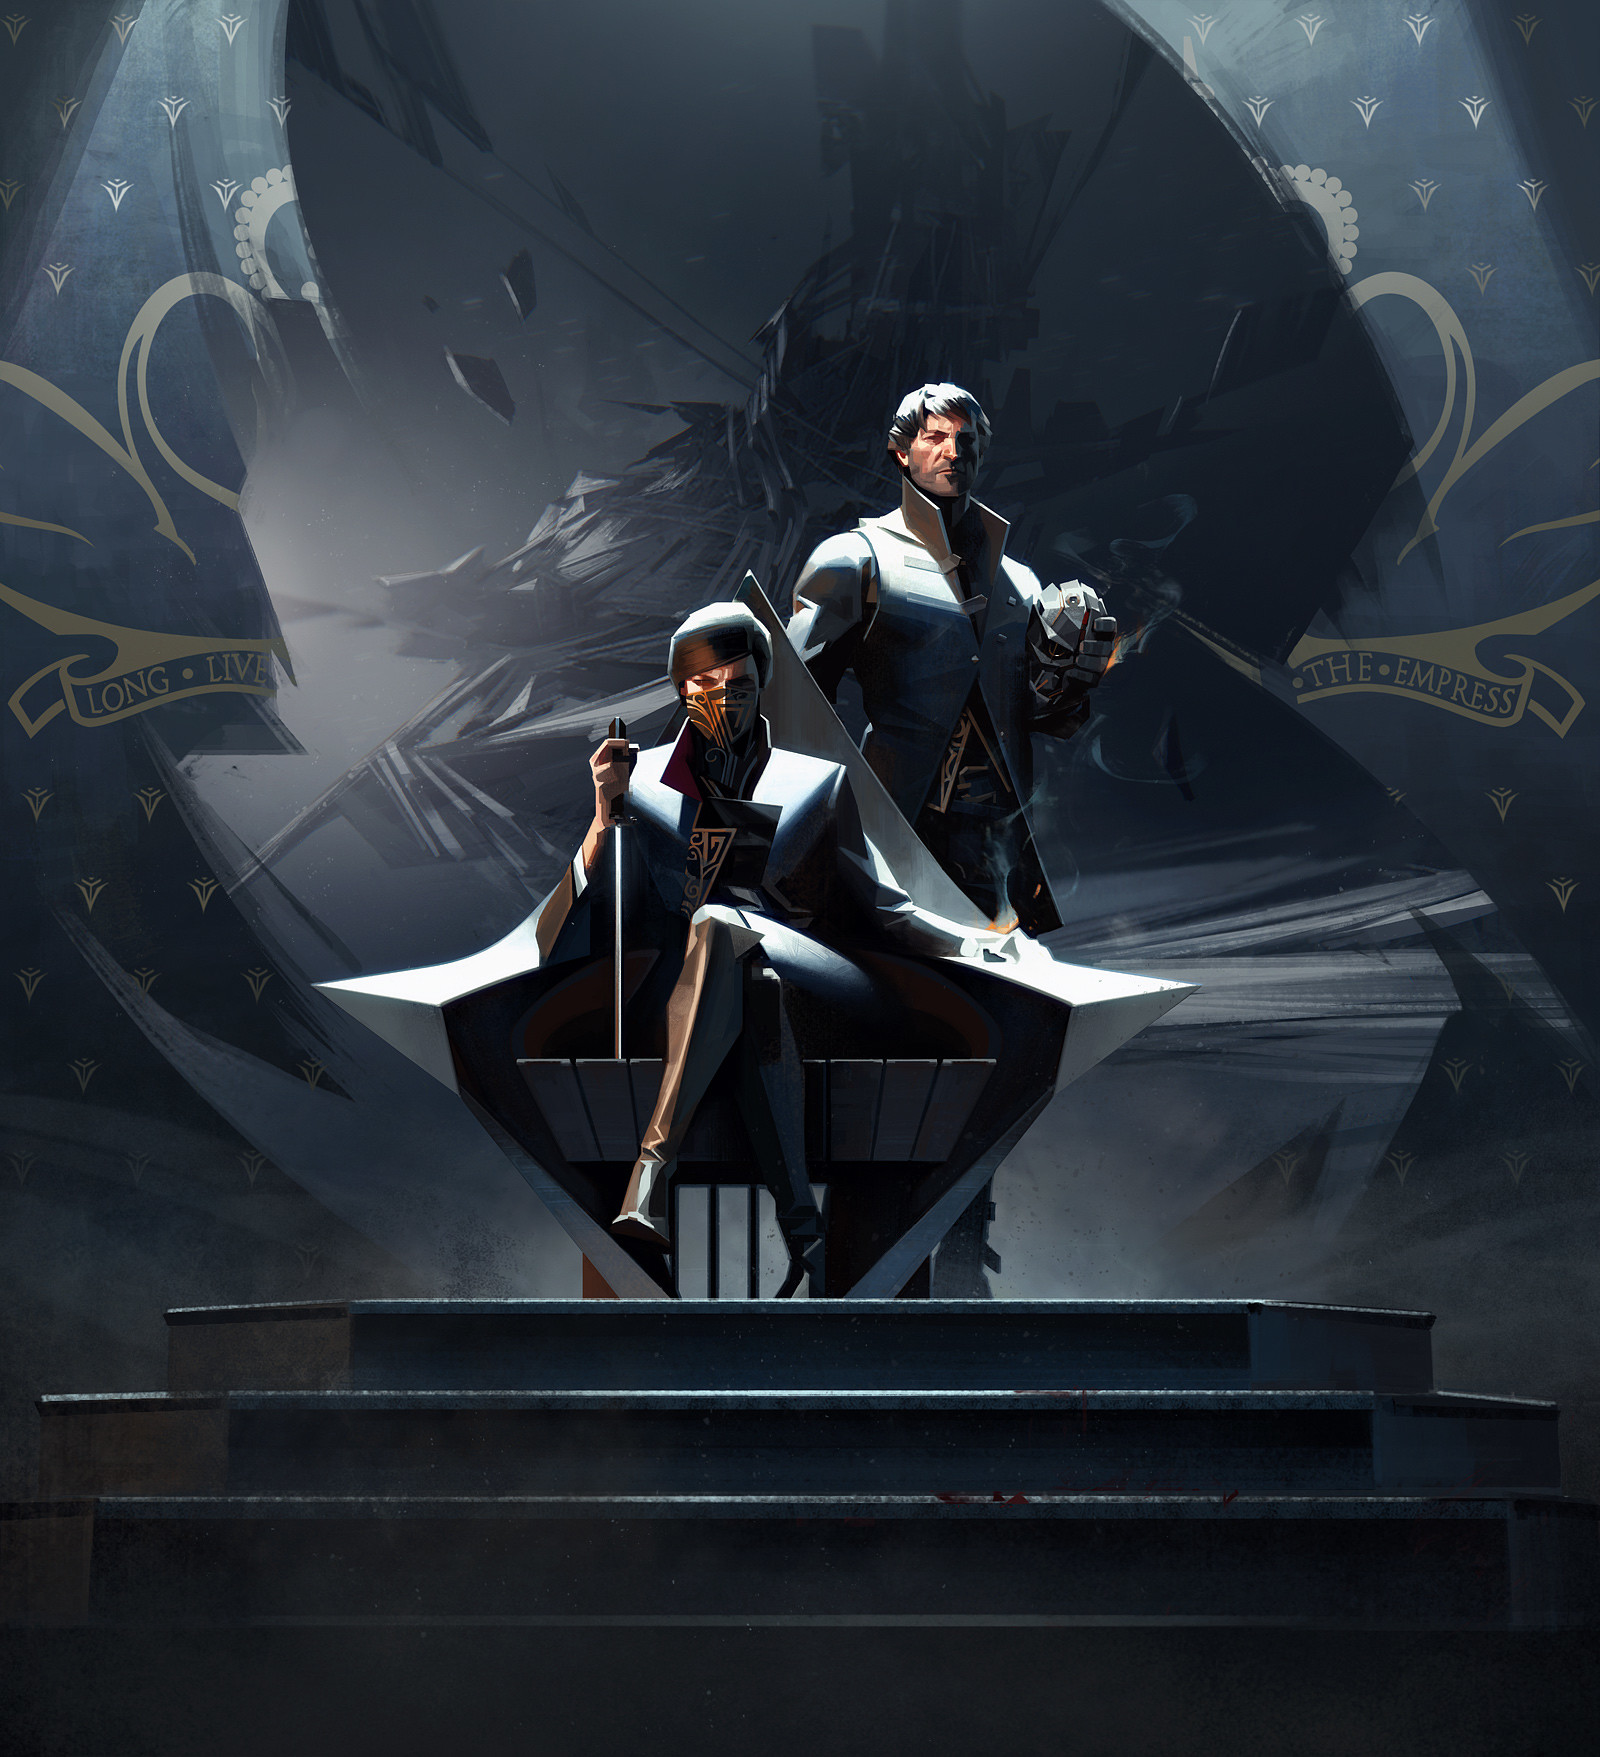 Sergey Kolesov Digital Painting Concept Art Dishonored 2 Throne